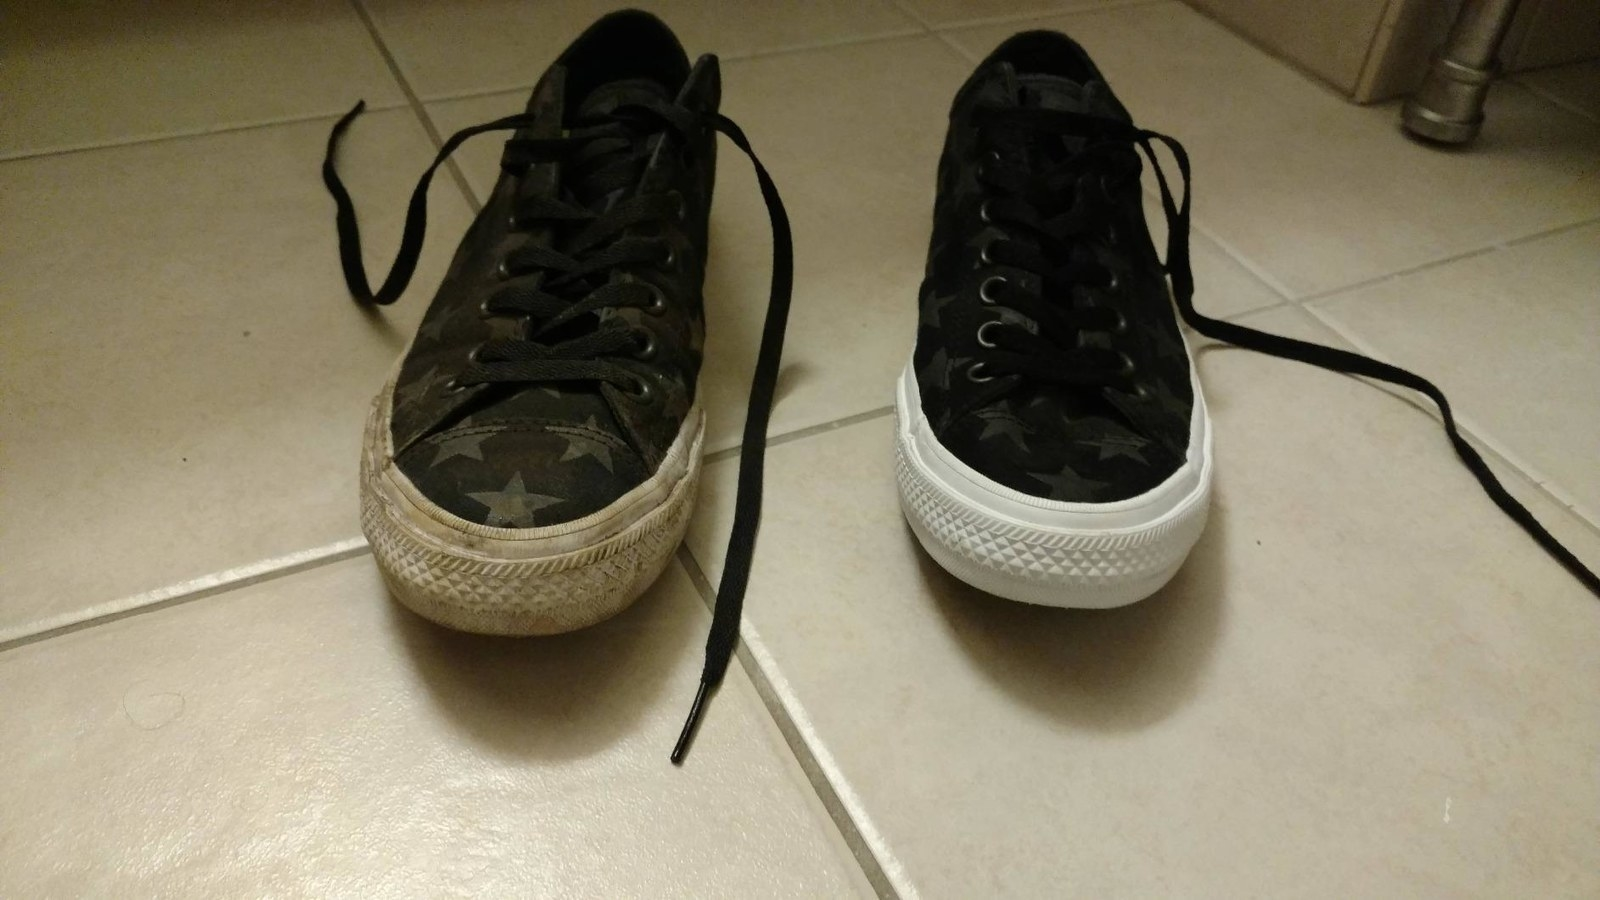 A reviewer's sneakers: one very dirty with the thick white soles tinted brown, the other completely clean and brand new looking